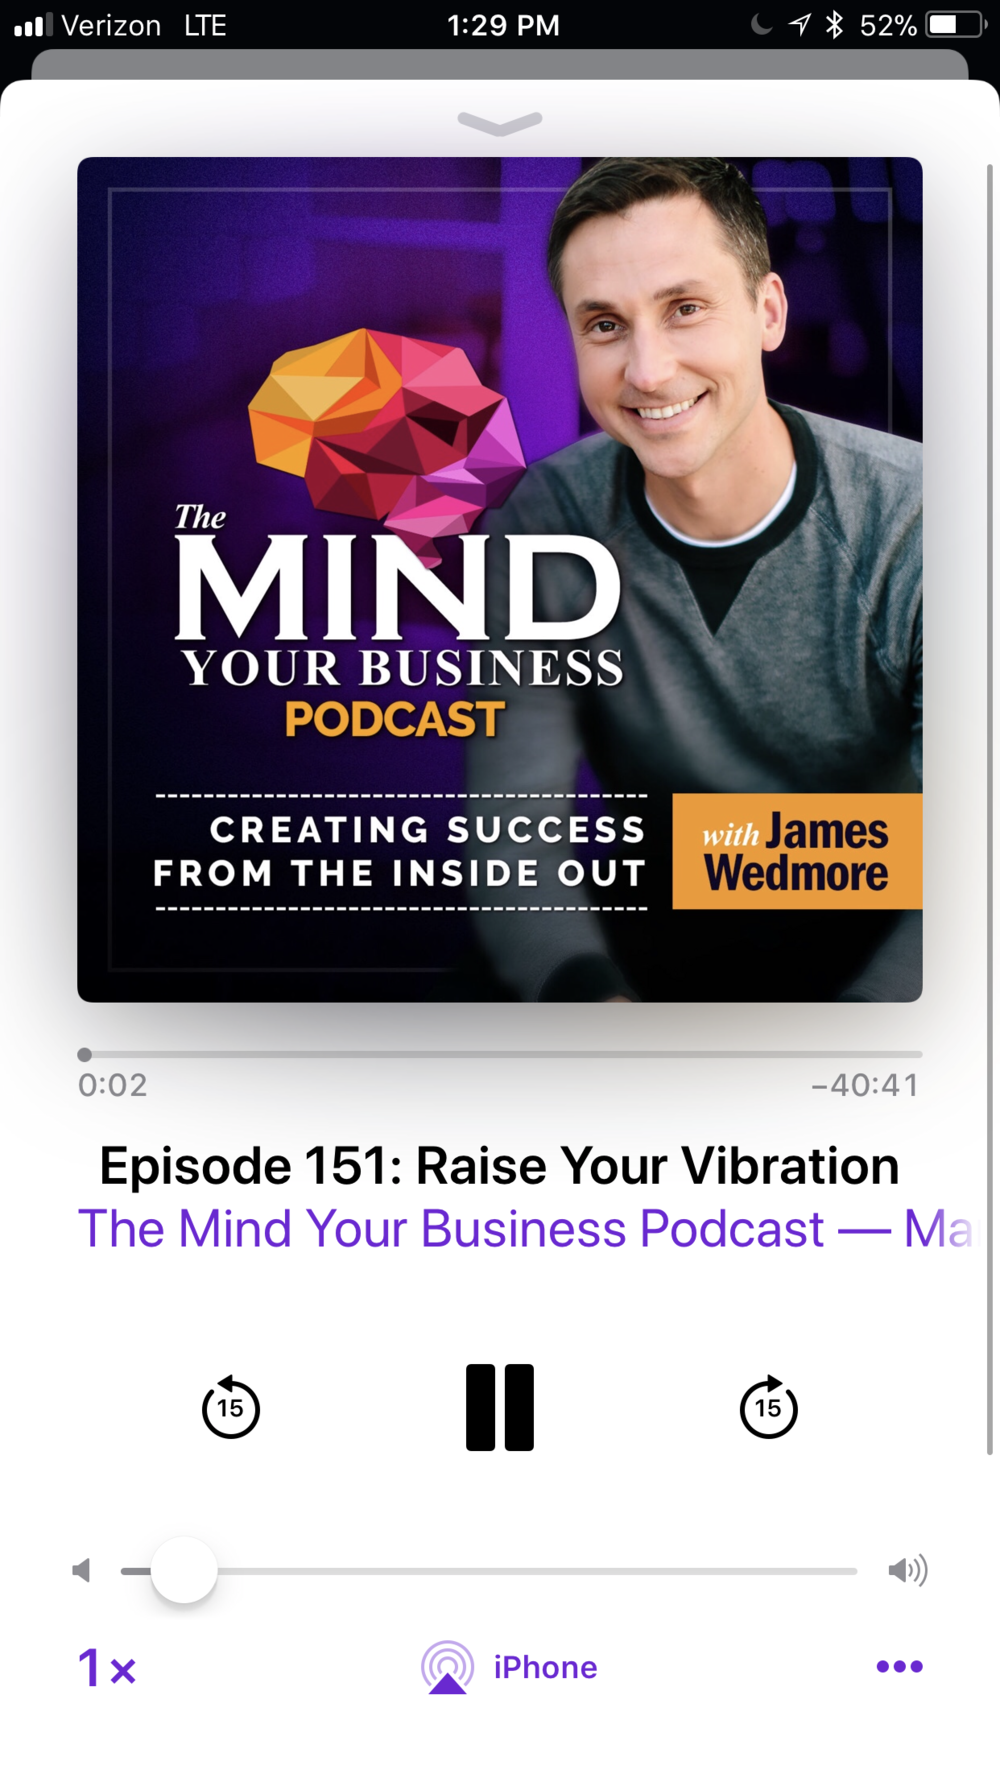 Control Your Mindset: Feel good, be happy, help others - This show does an excellent job of thoroughly discussing the importance of our mindset.  I loved the emphasis on importance of negative emotions and how we can acknowledge and use them to serve us in a positive way.